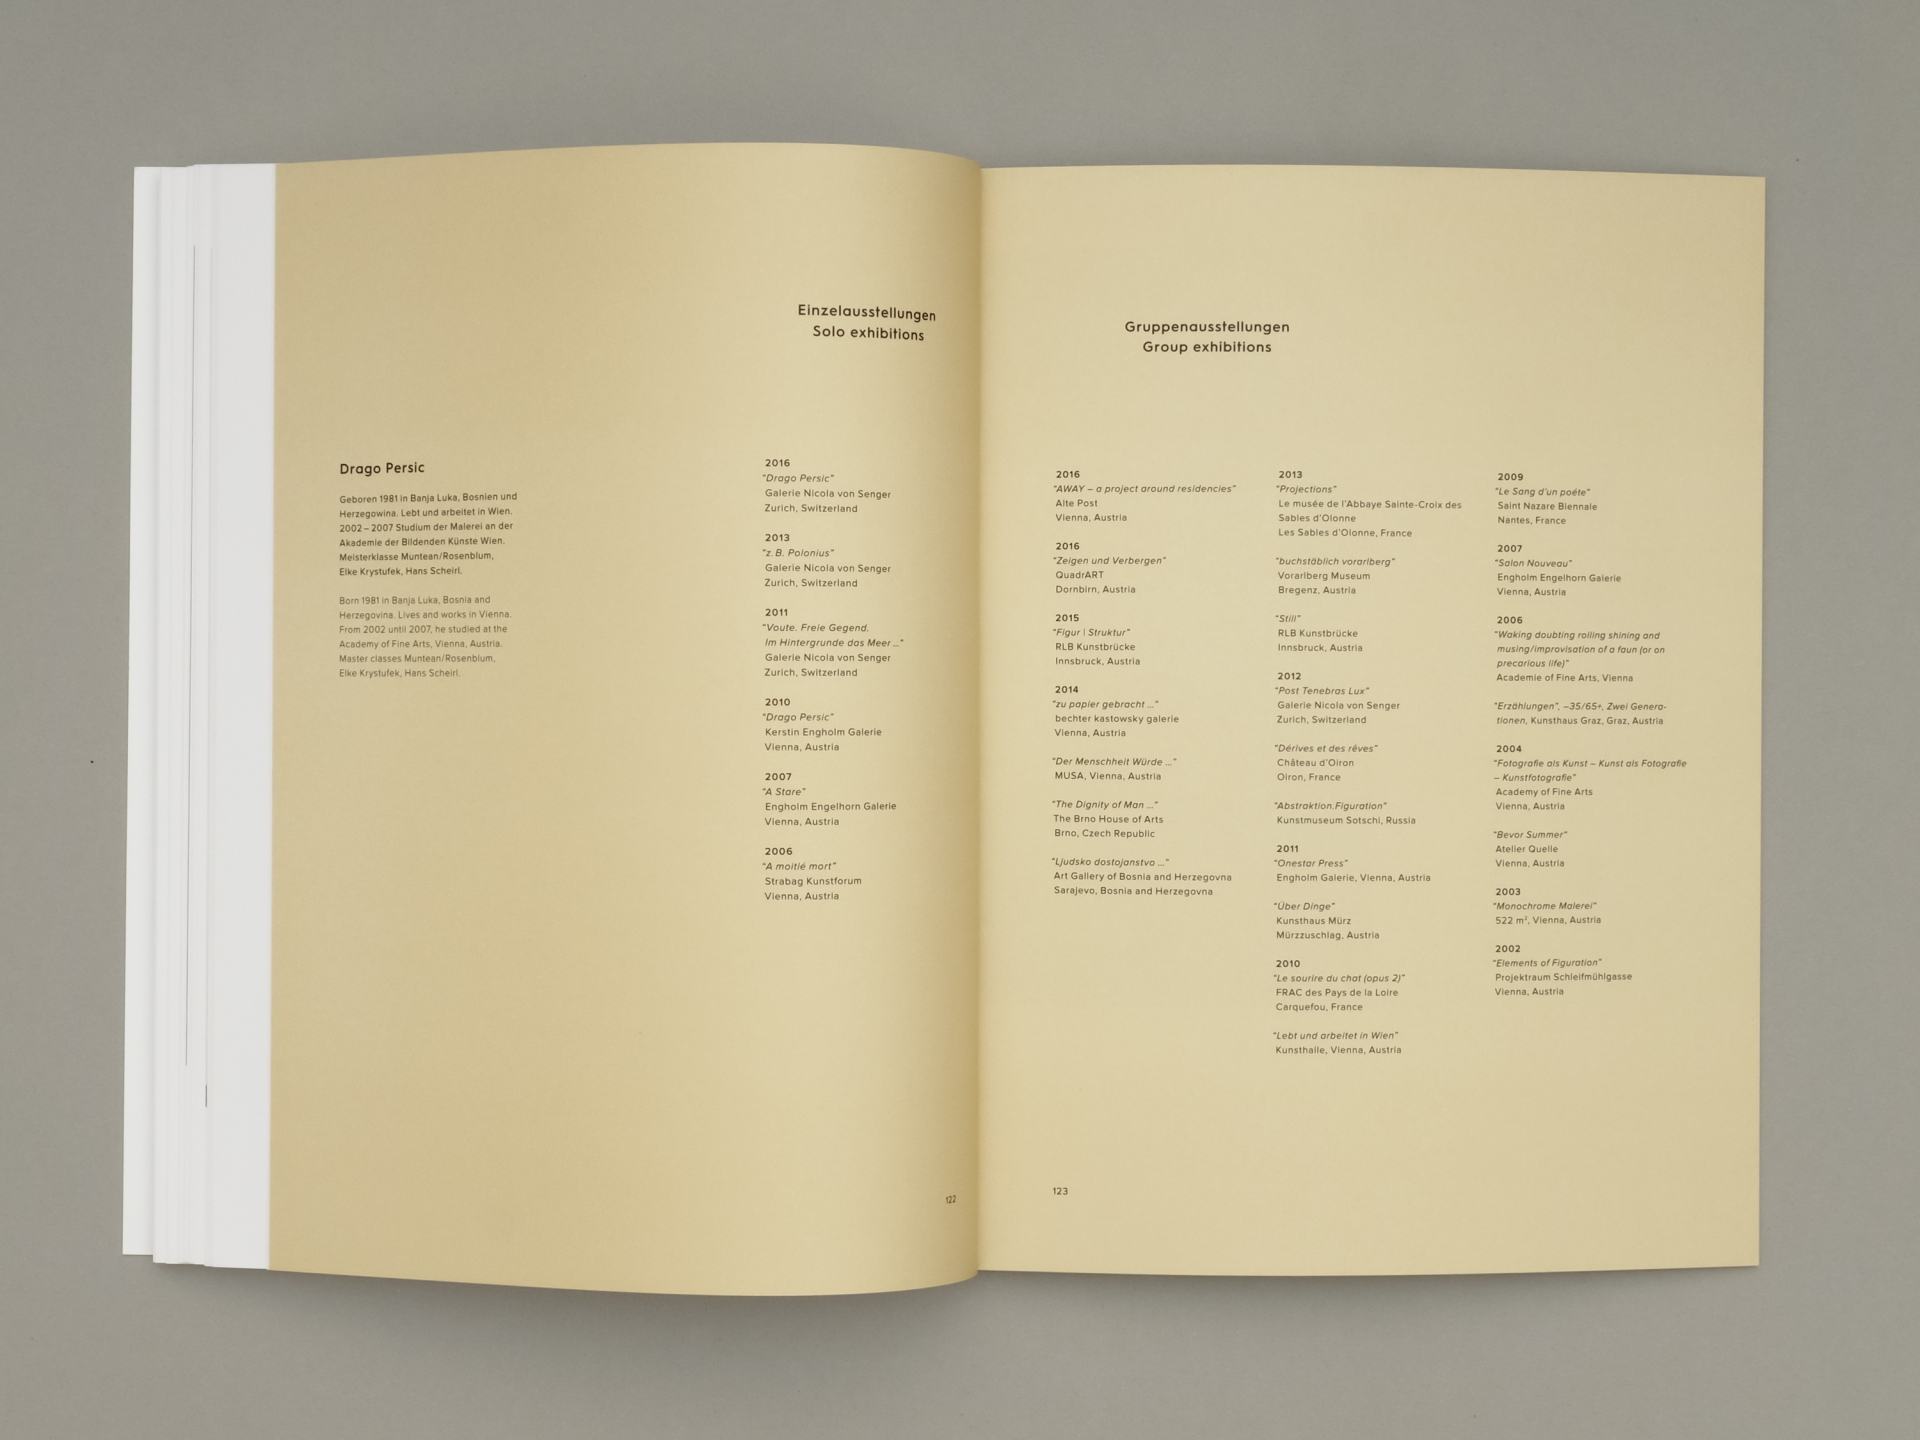 Grafikum Drago Persic artist catalogue